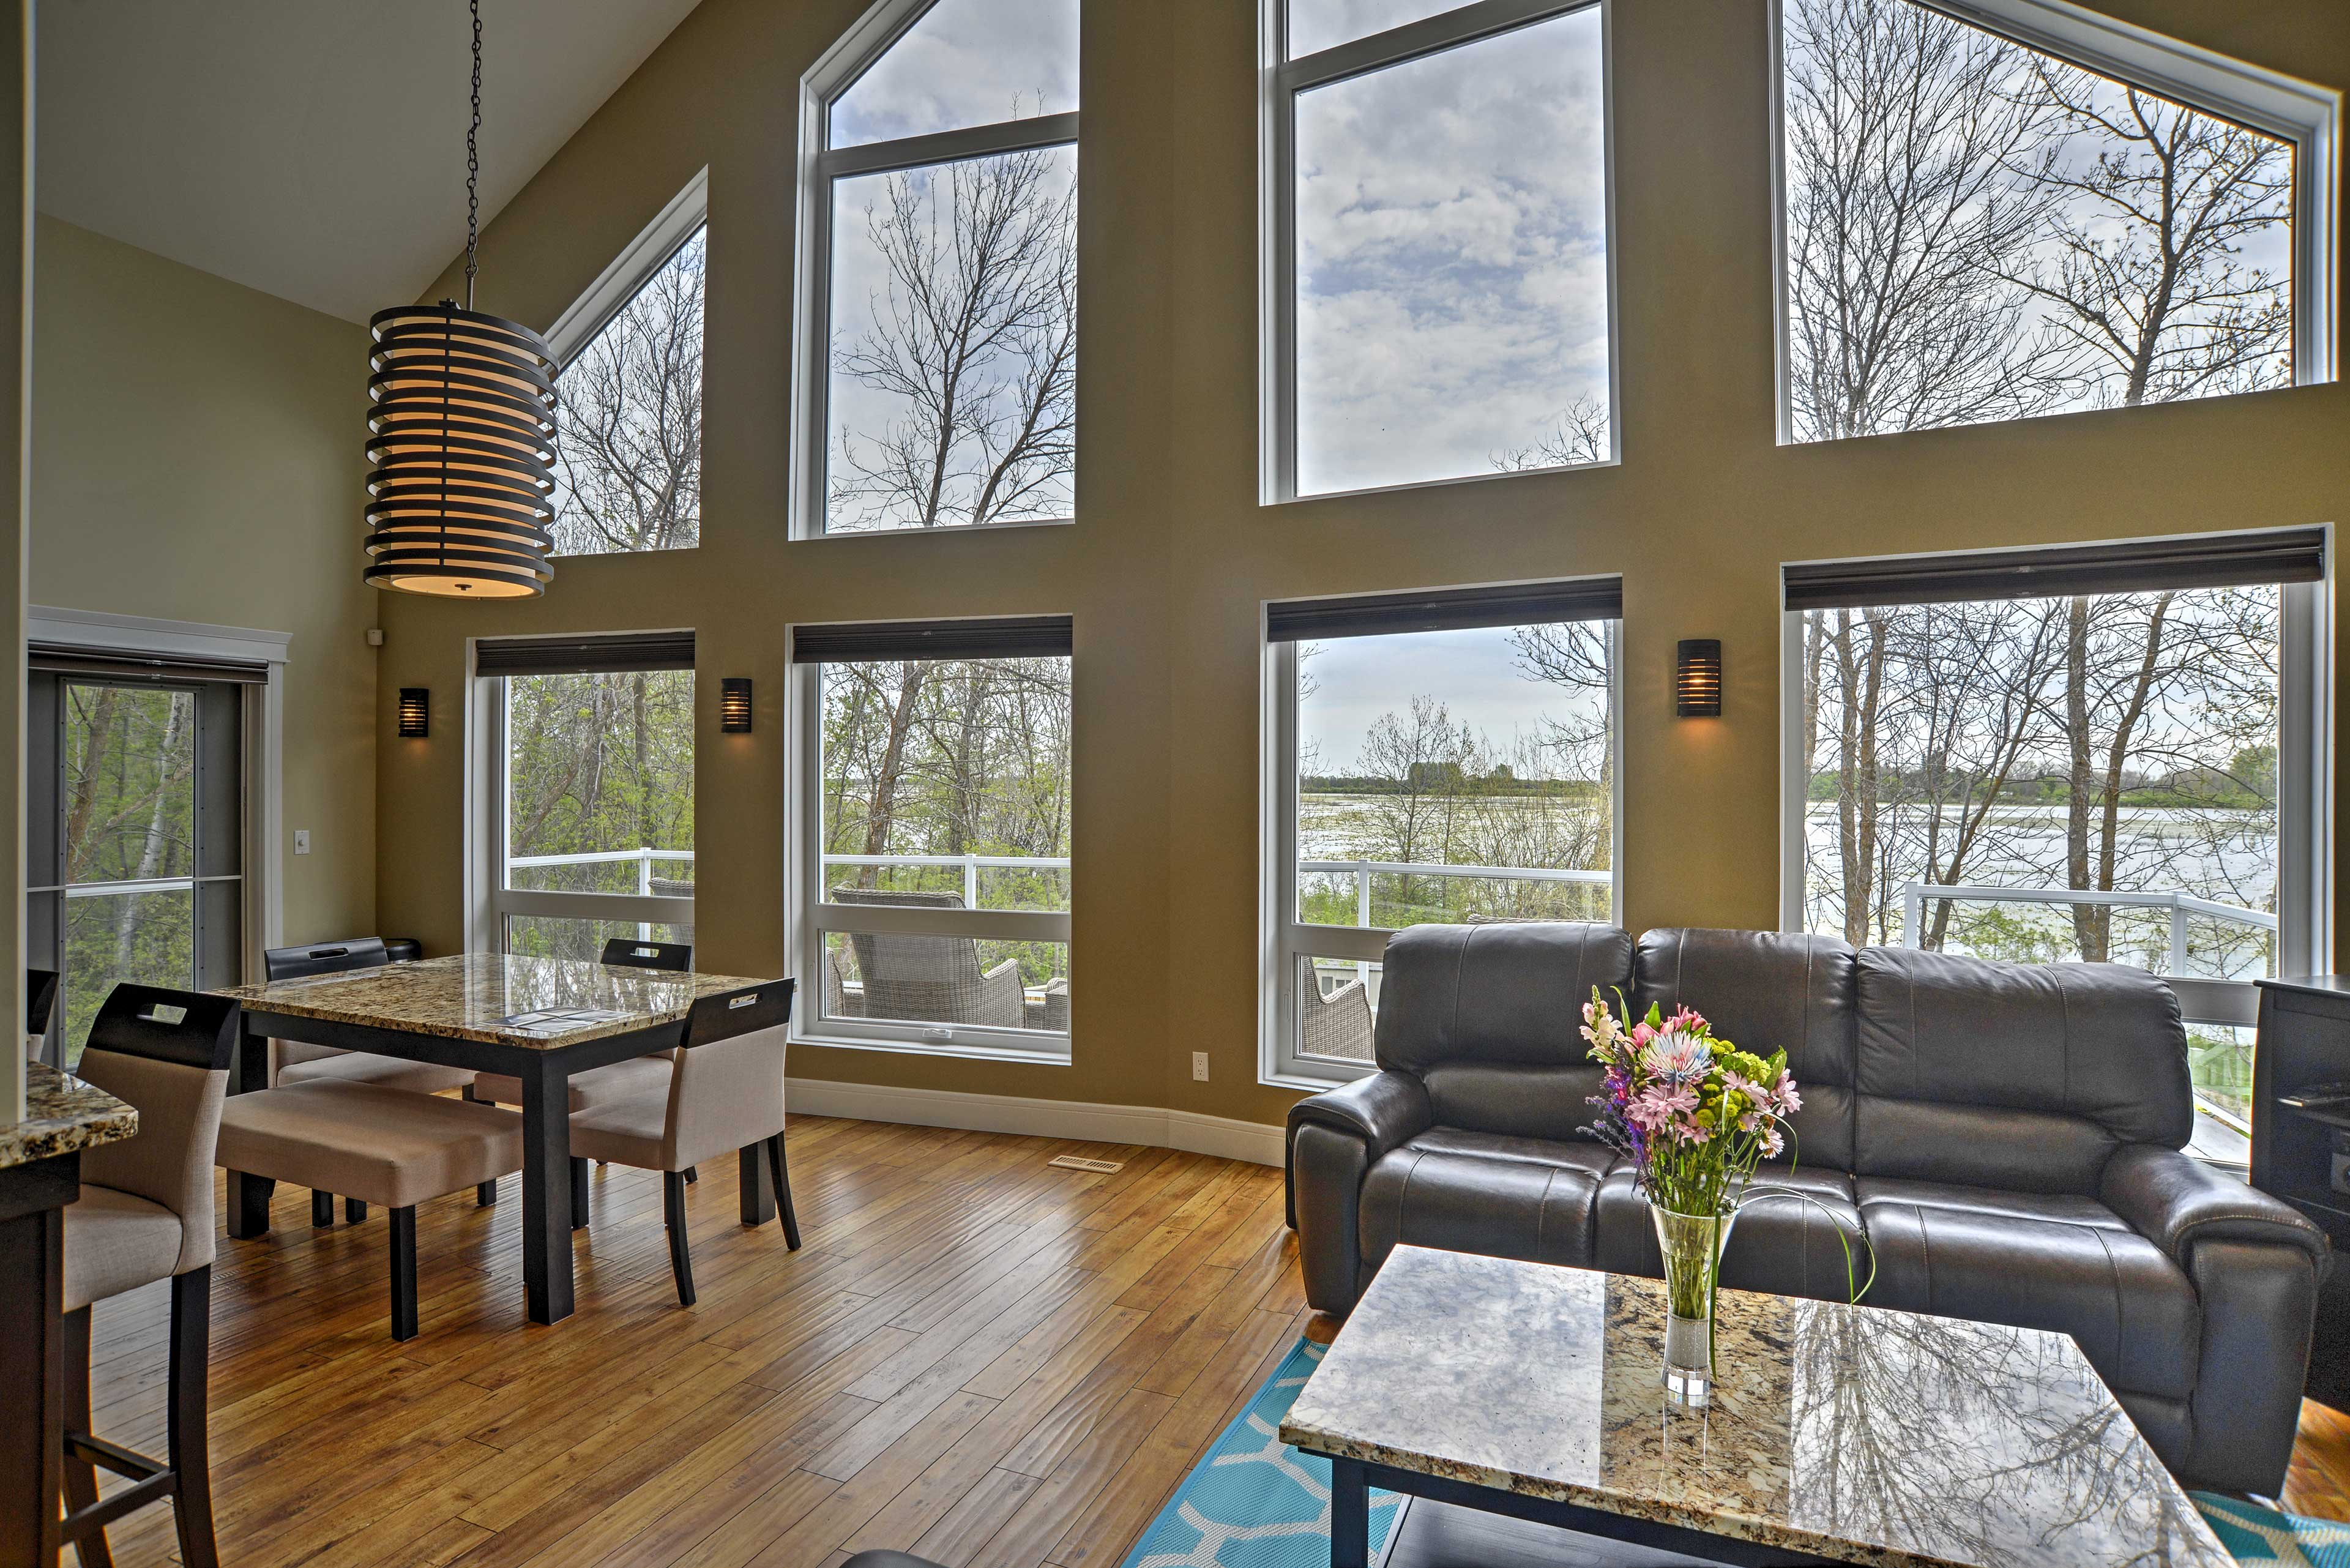 Large windows let in plenty of light and provide amazing views.